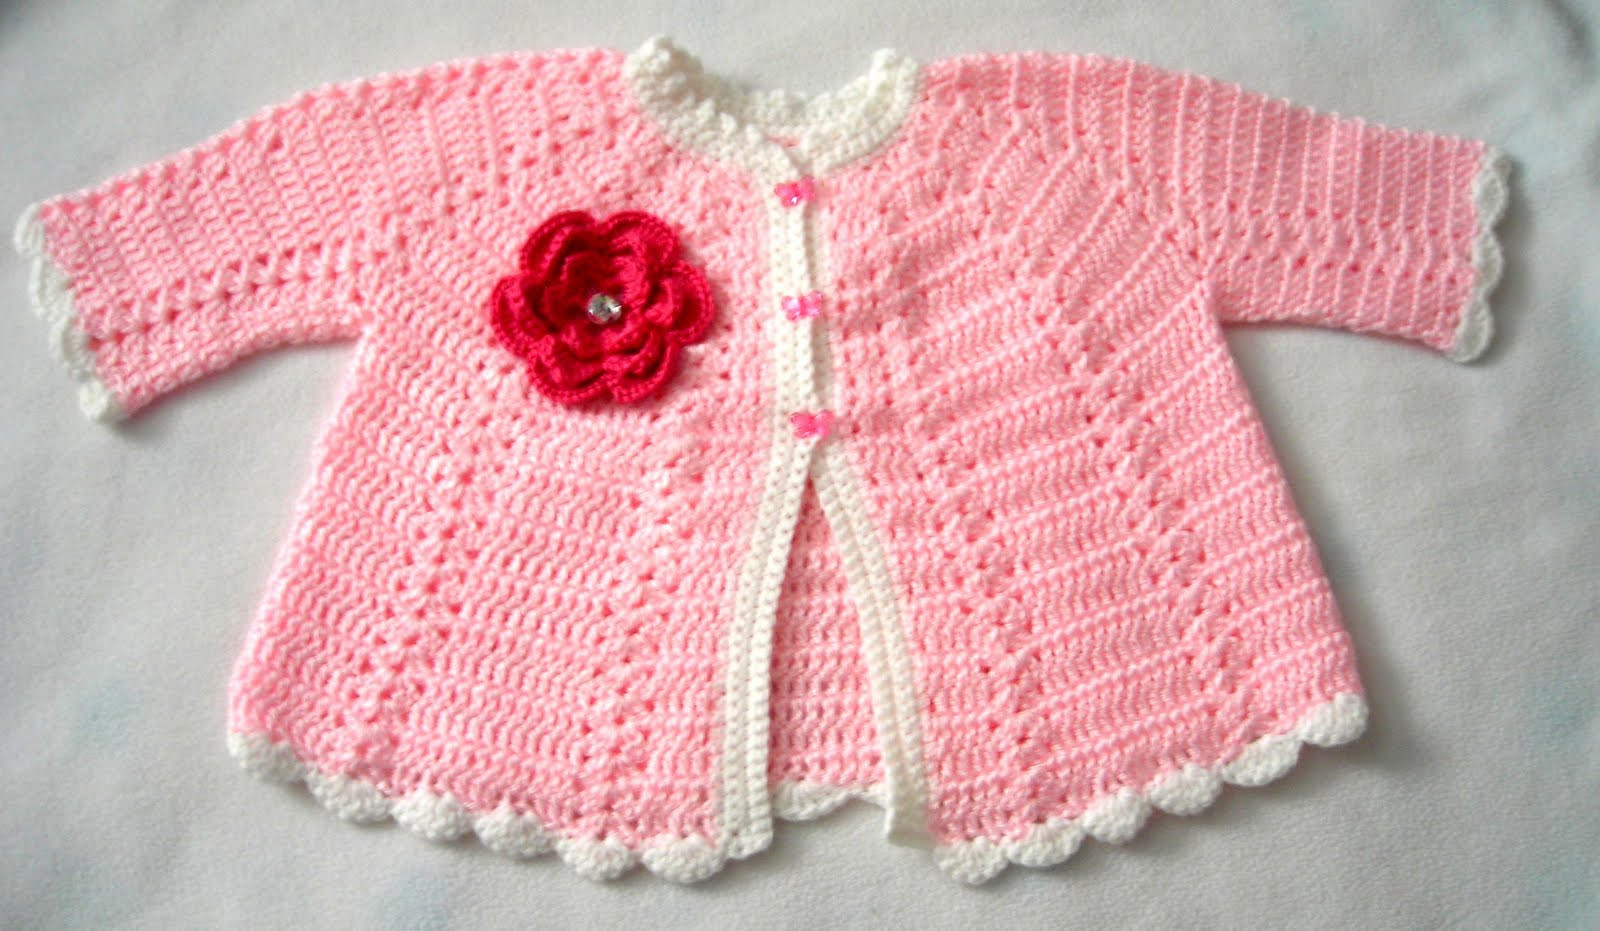 Crochet toddler Sweater New Crochet A Baby Sweater Long Sweater Jacket Of Lovely 50 Photos Crochet toddler Sweater